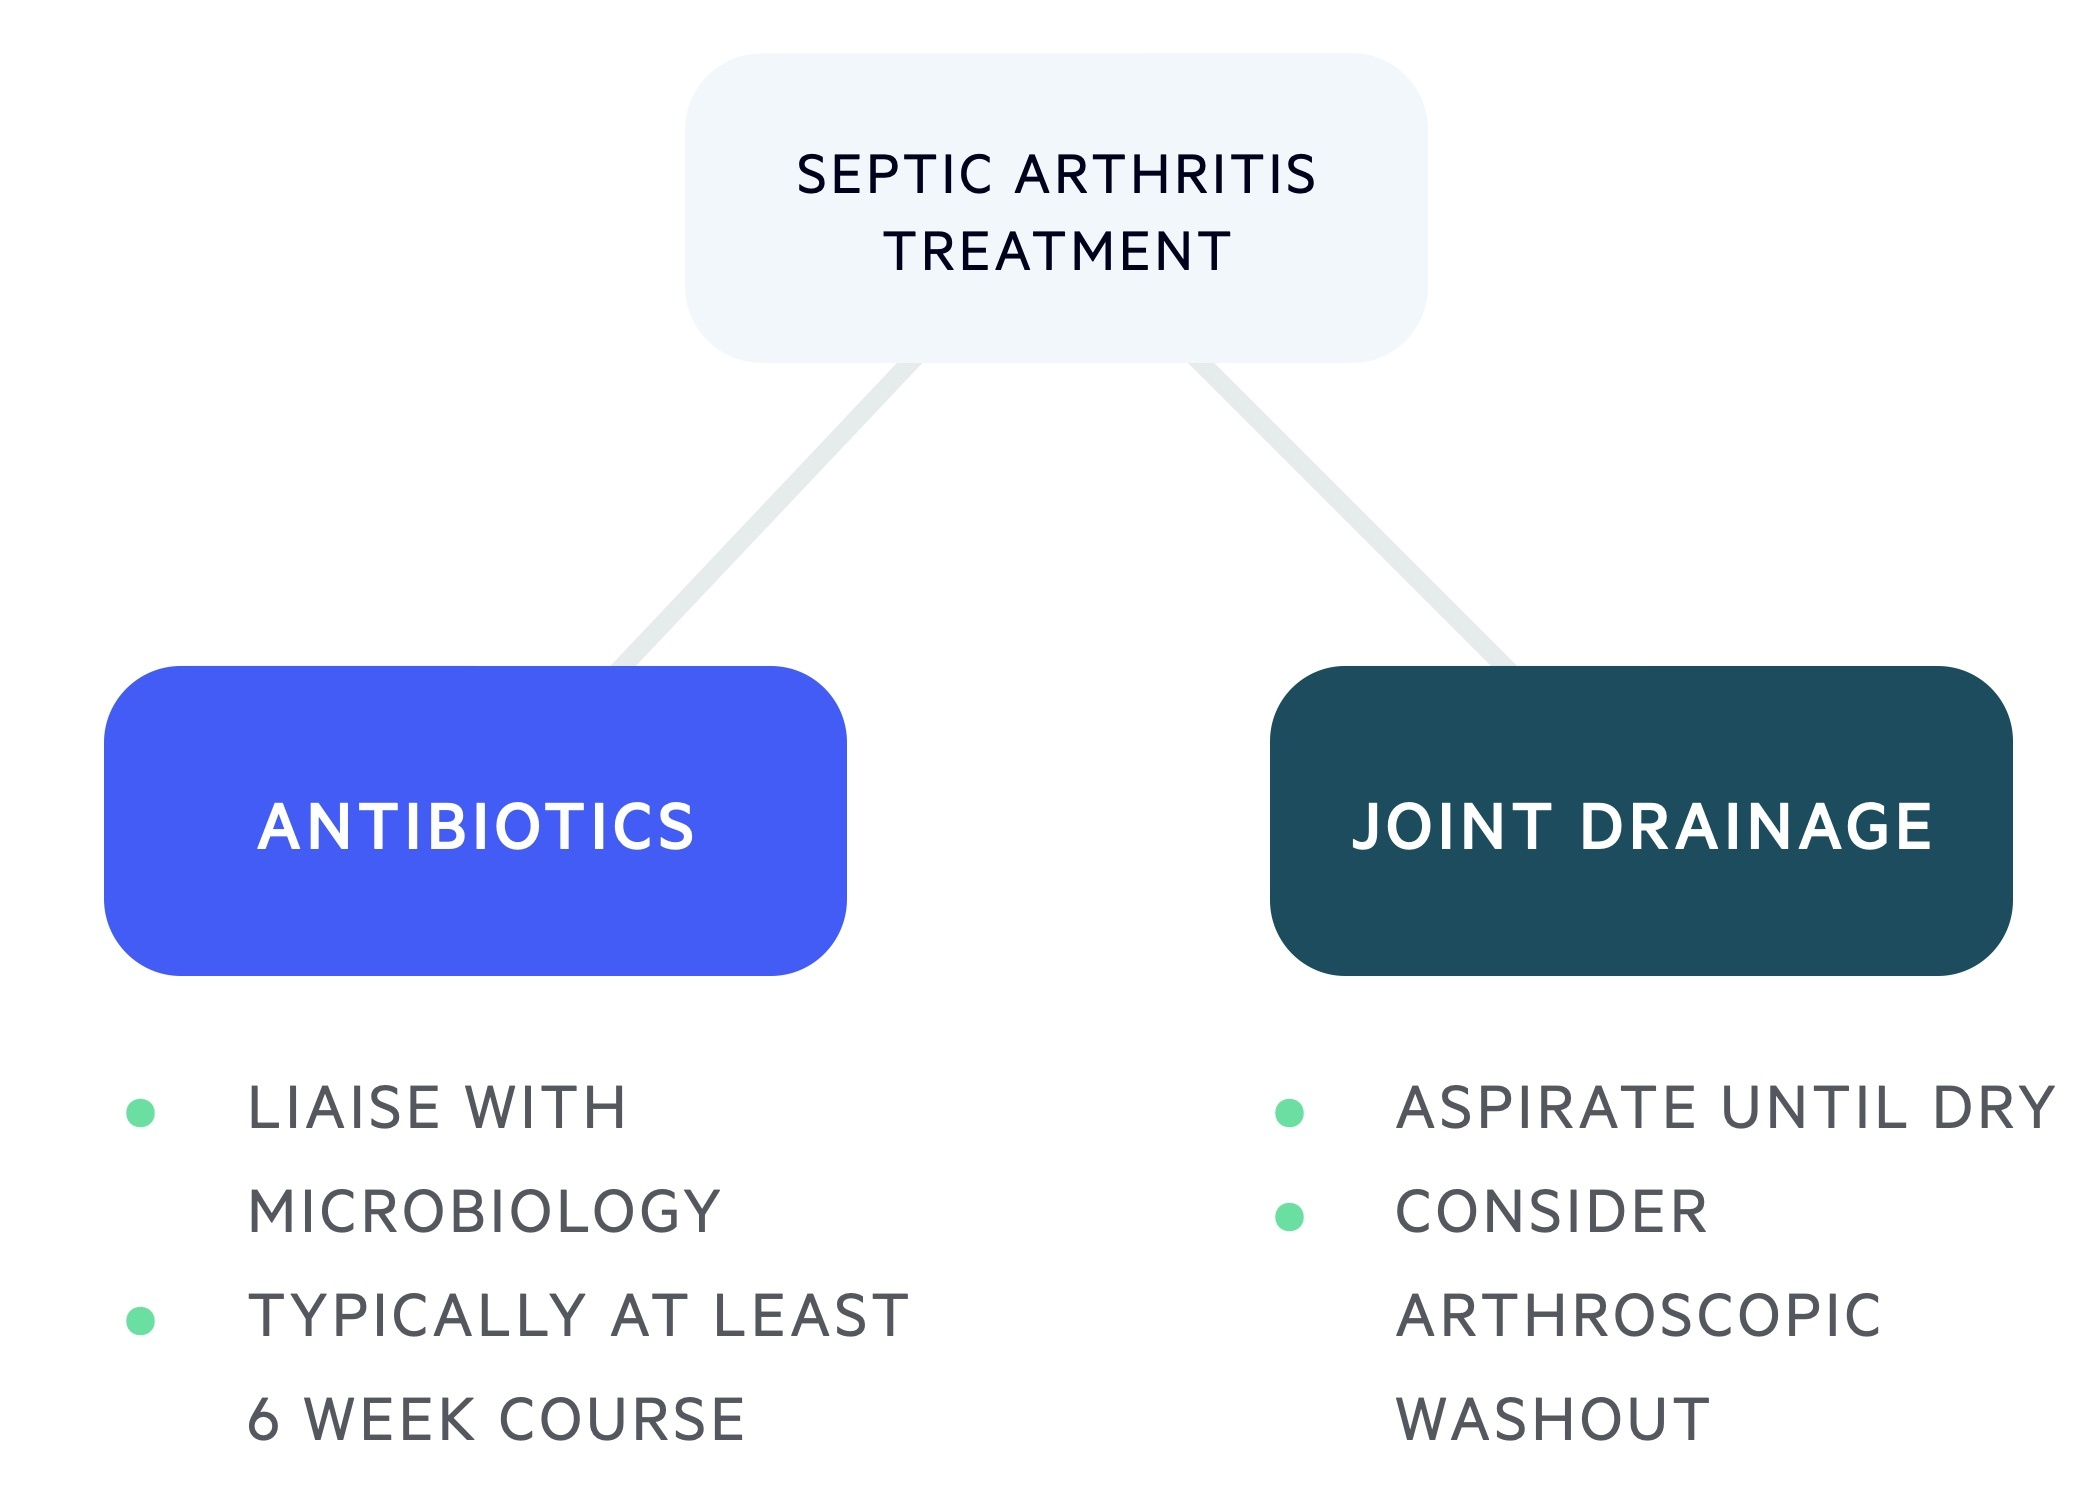 Septic arthritis treatment